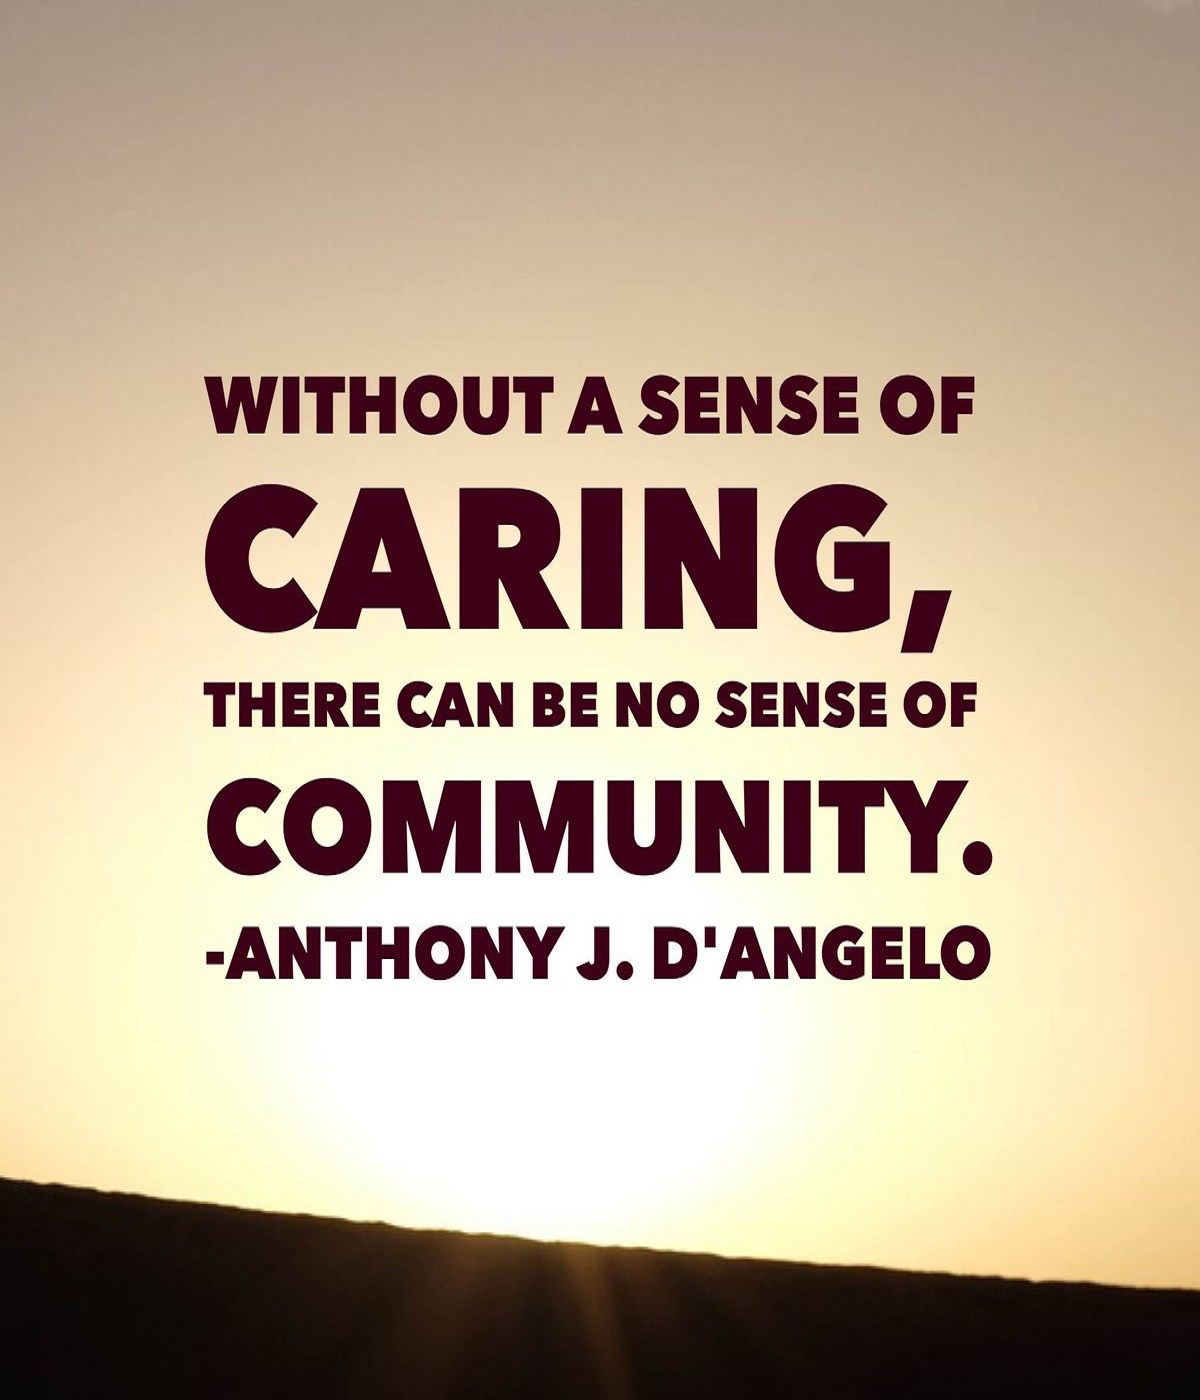 Community Quotes Without A Sense Of Caring There Can Be No Sense Of Community